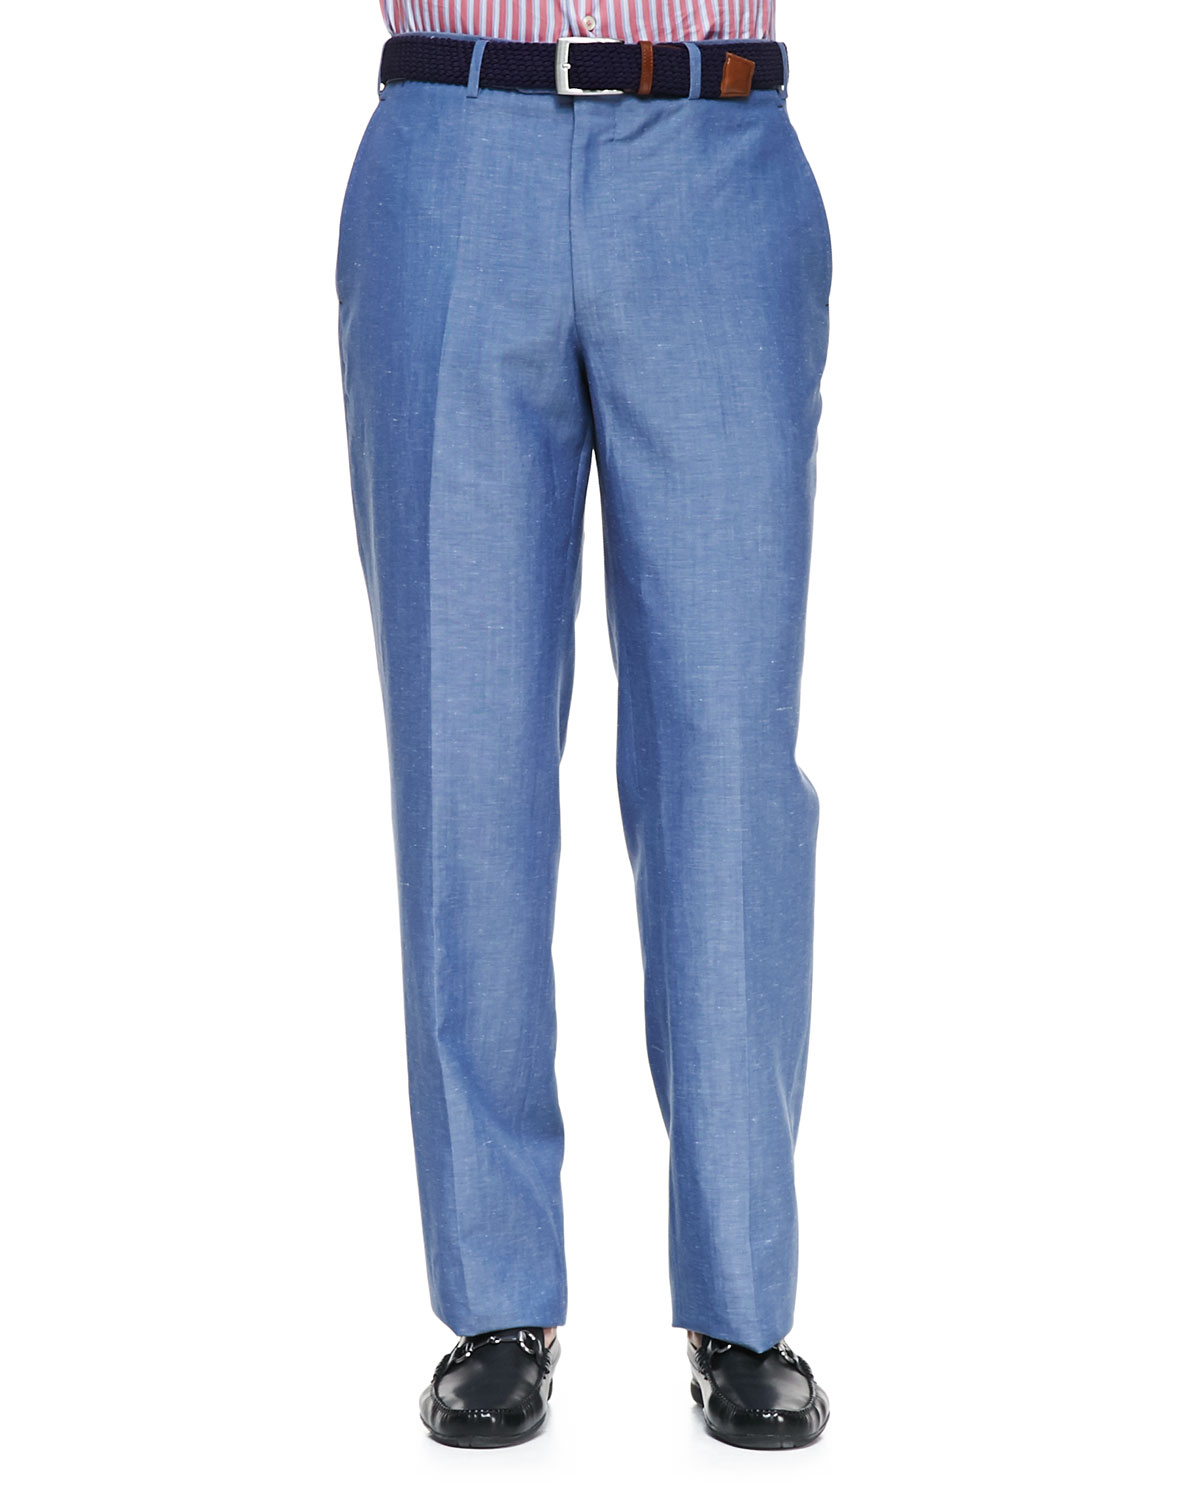 Mens Wool & Linen Flat Front Dress Pants, Blue   Peter Millar   Blue (38)